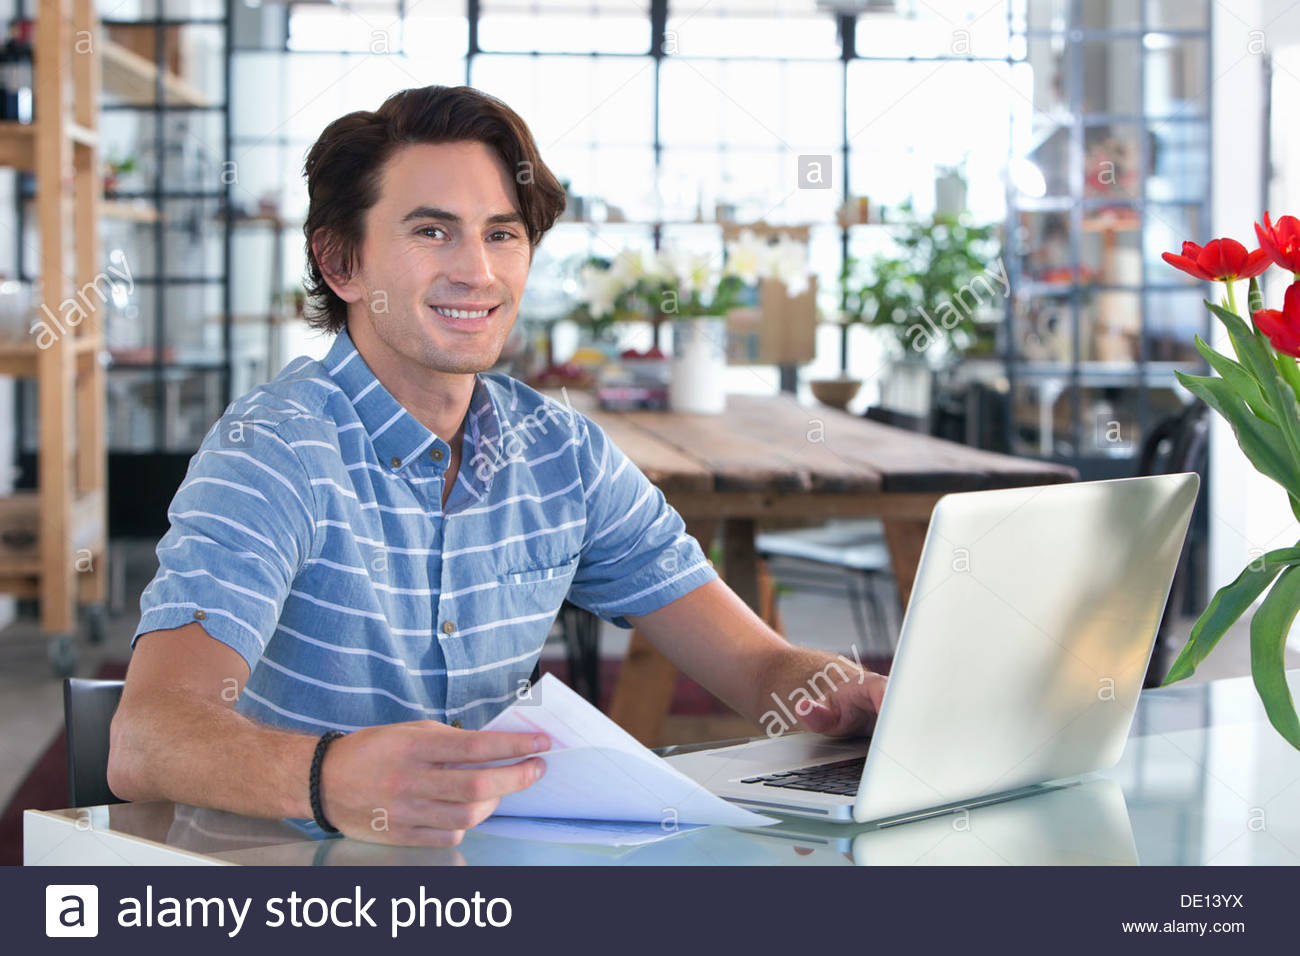 Portrait of smiling man holding paperwork and using laptop at kitchen table - Stock Image